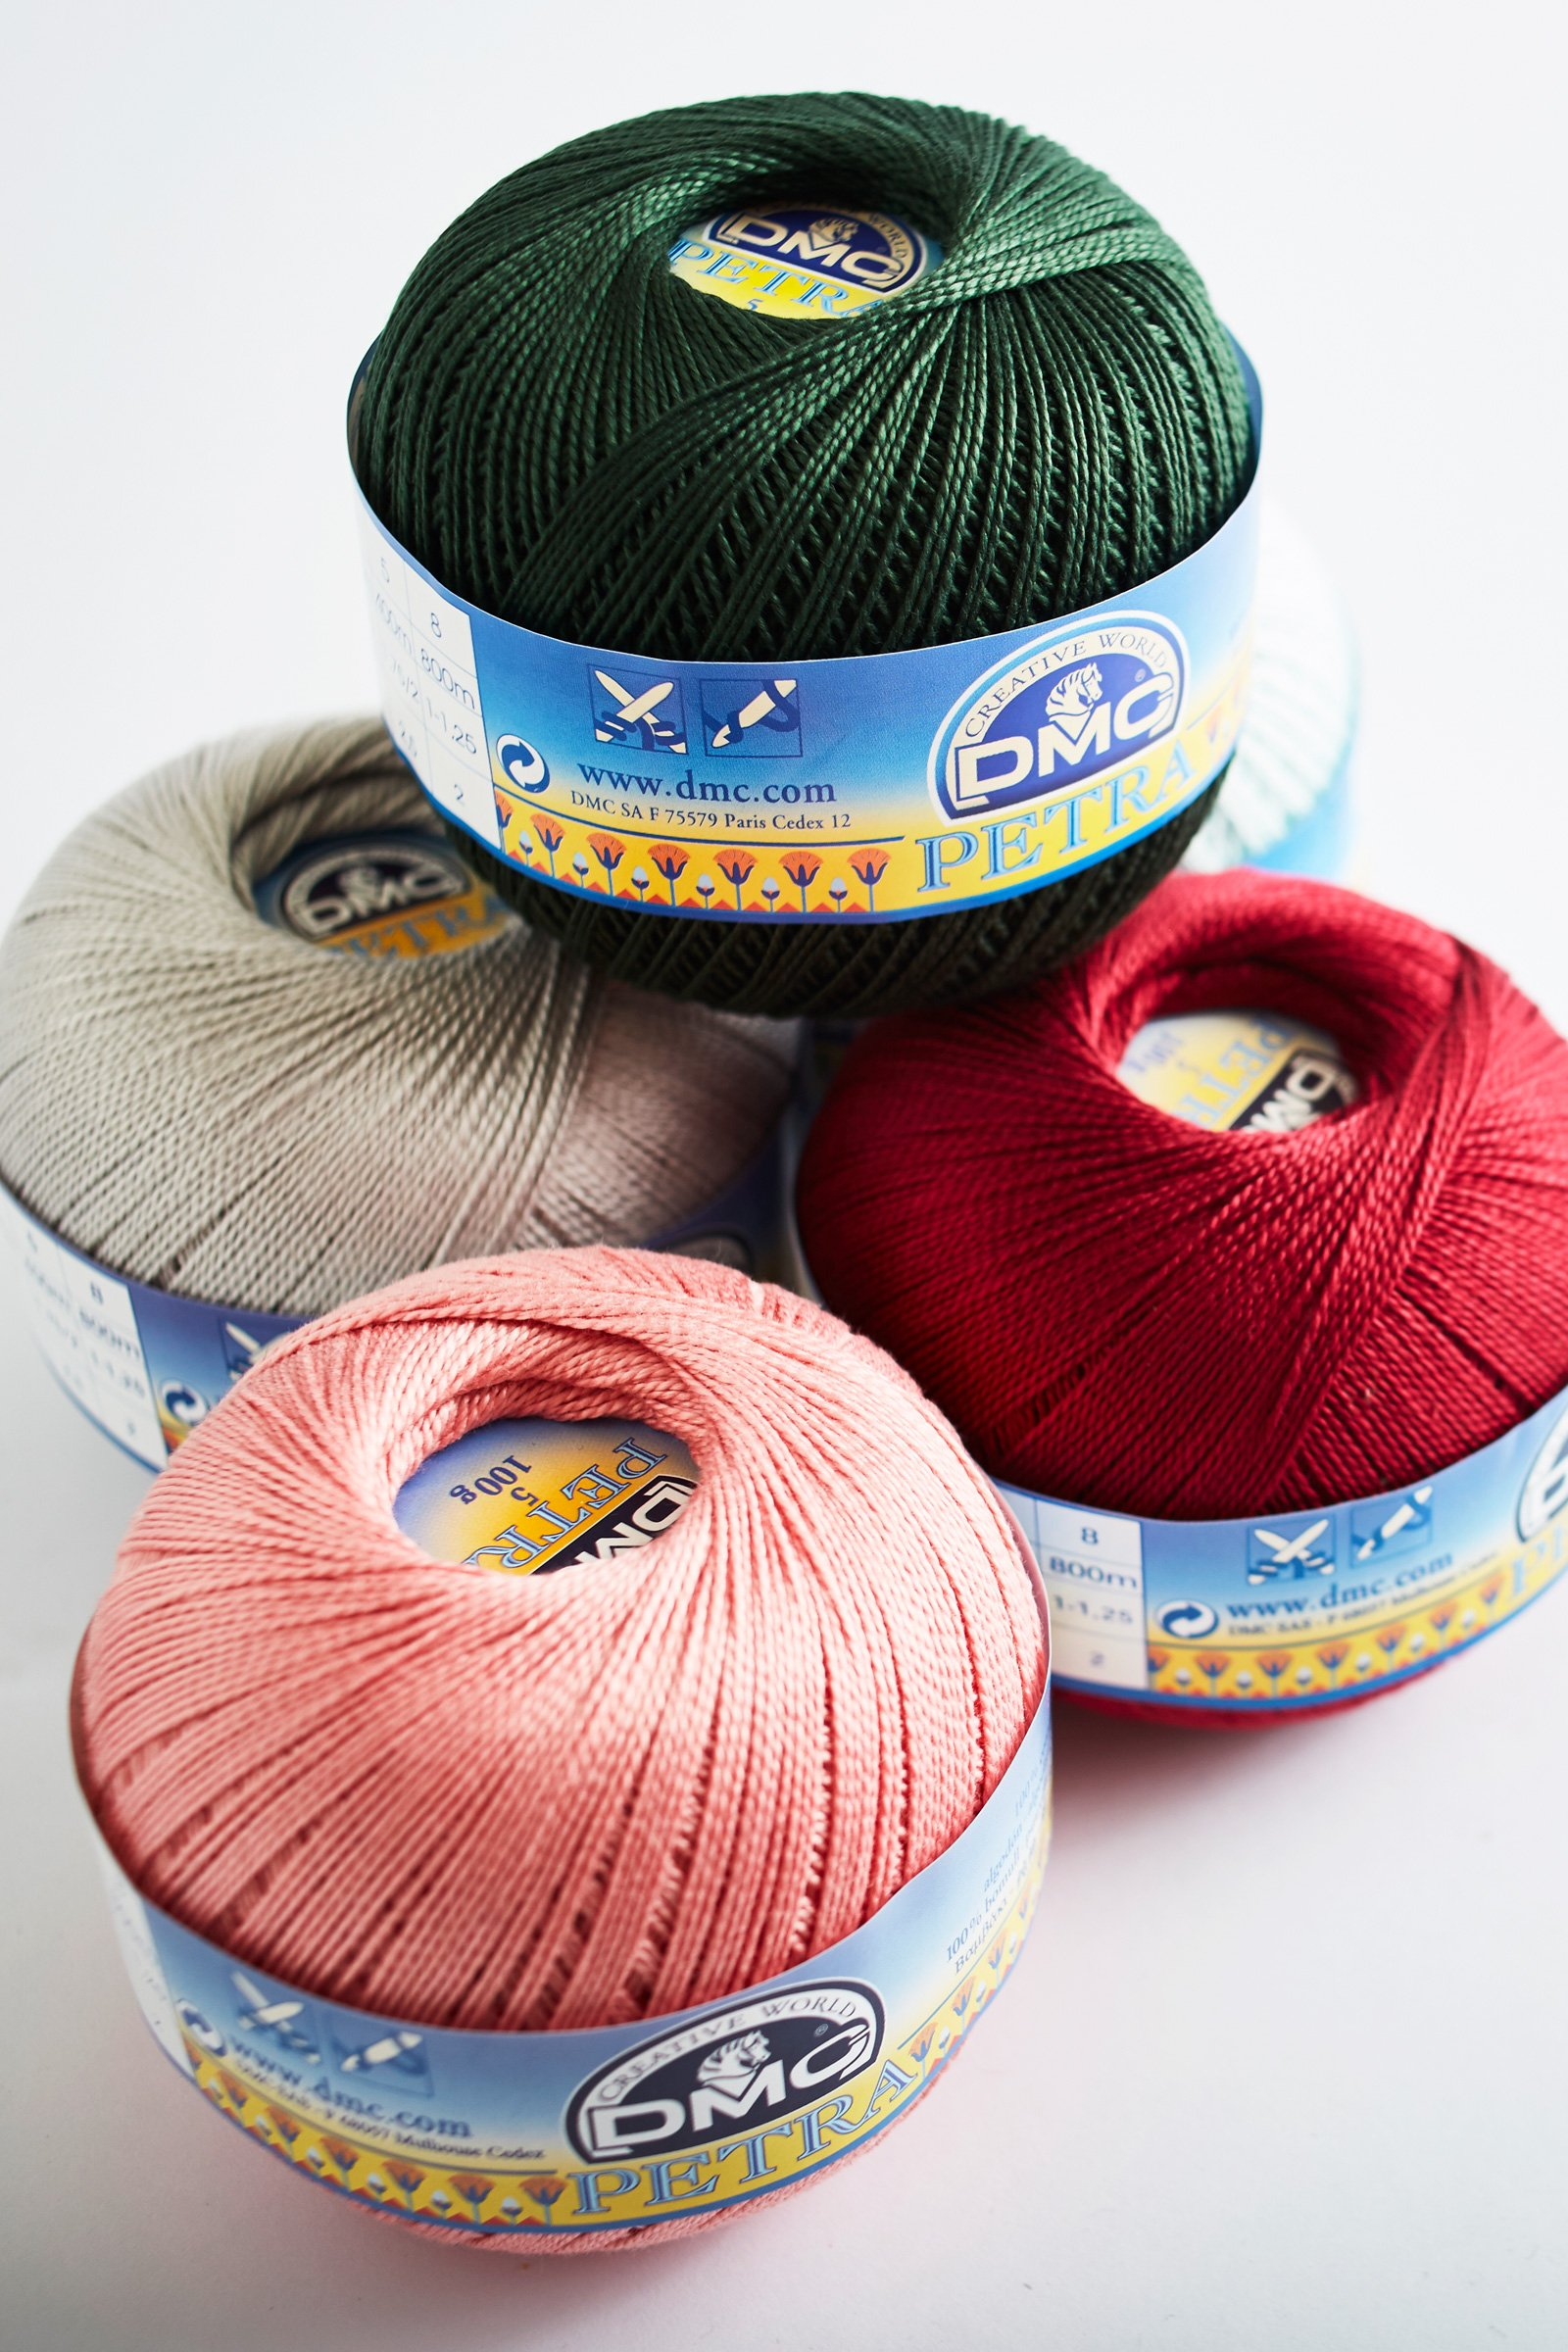 Petra Cotton Thread Size 5 - 100g/437 yds - 33 colors Available